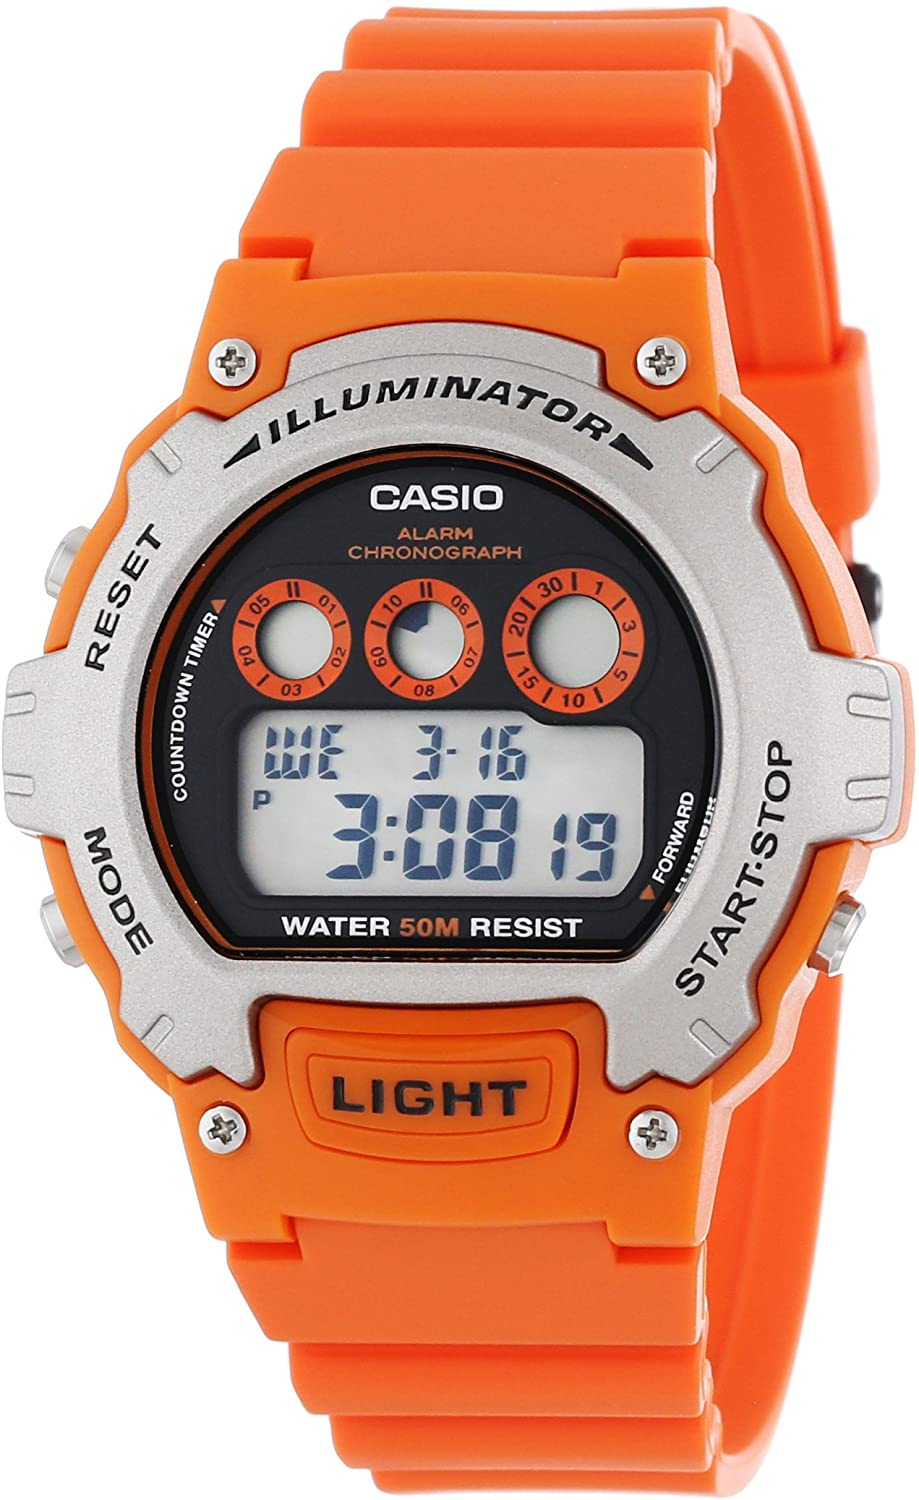 Casio Men's W-214H-4AVCF Chronograph Orange Watch